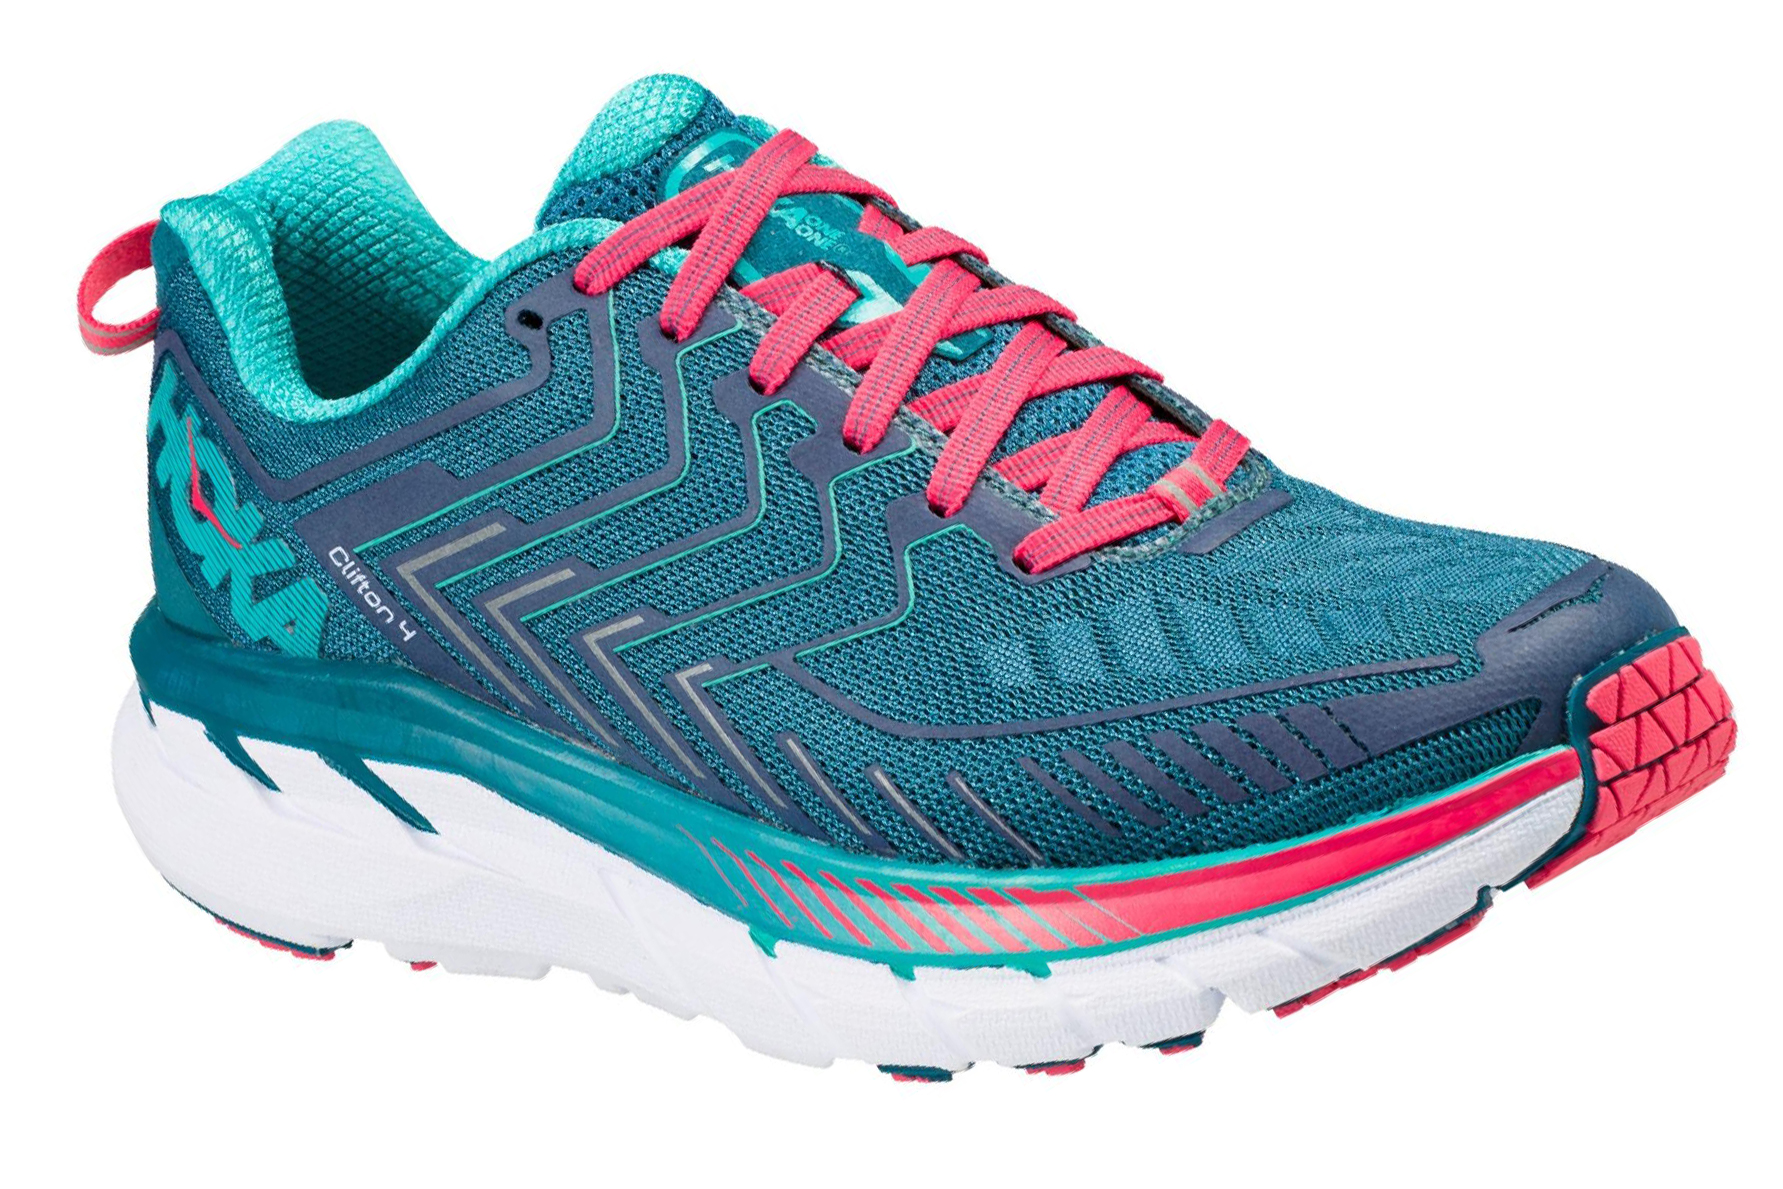 d54cc46208ce Best Running Shoes for Women